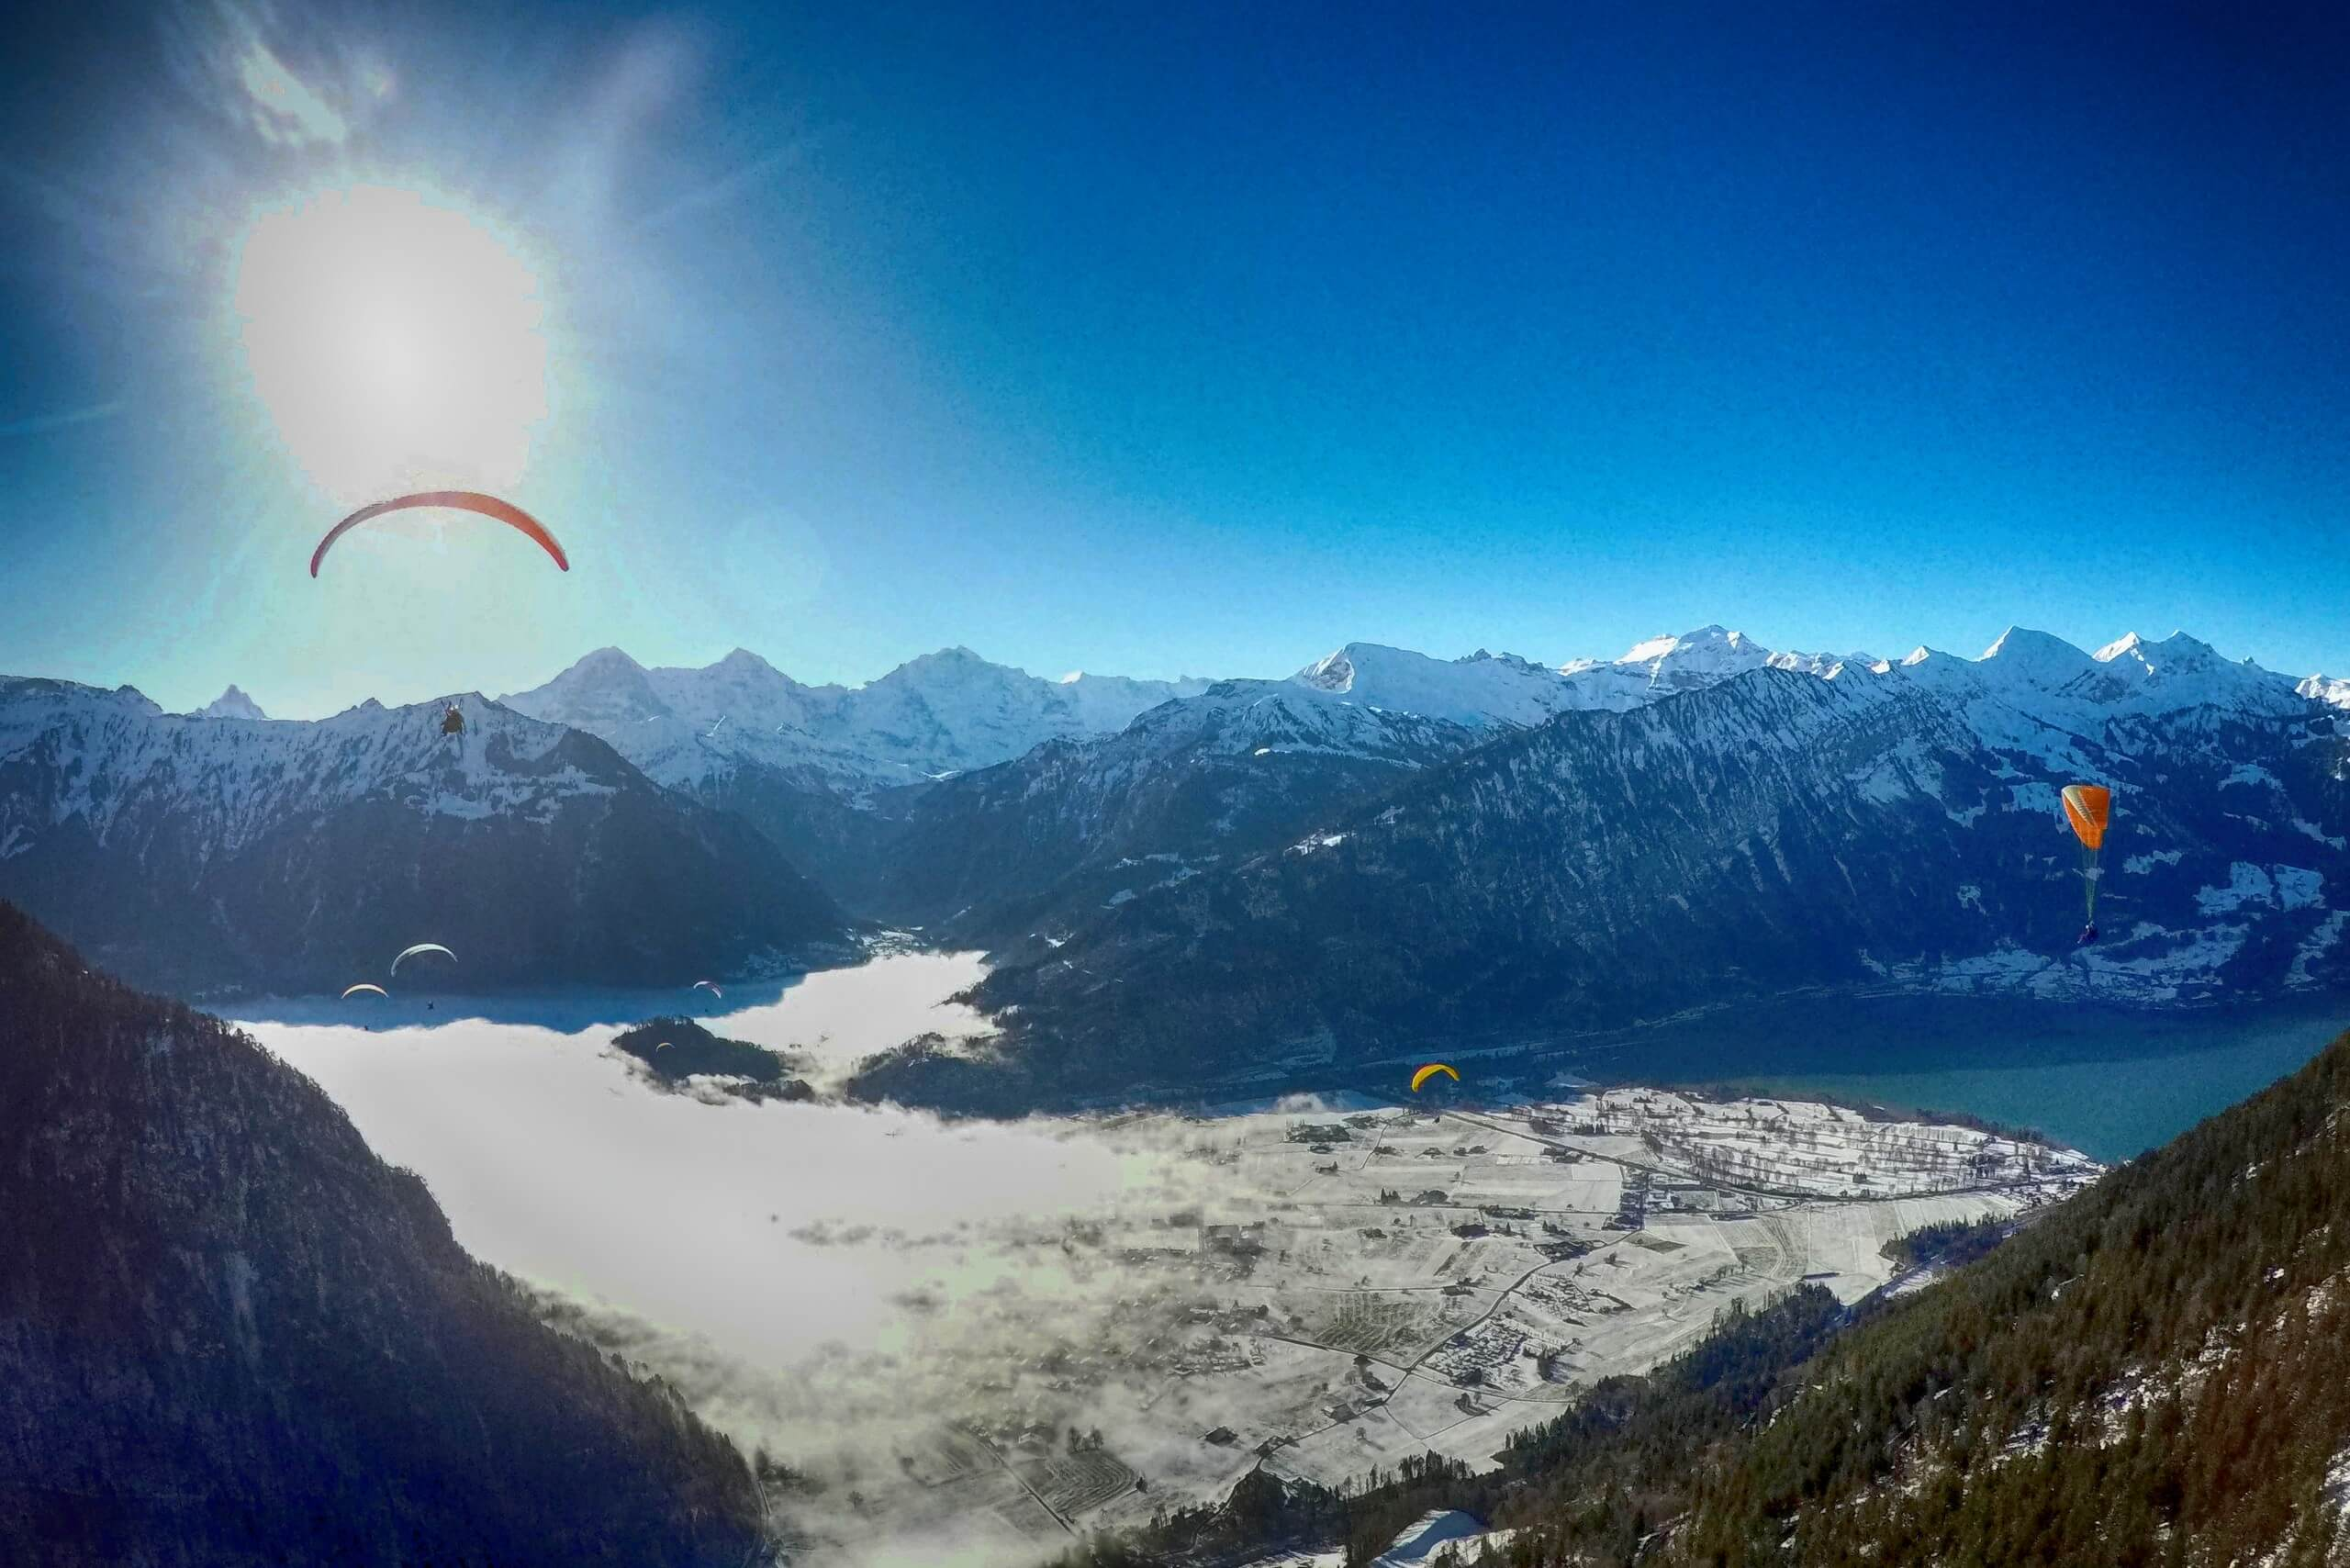 interlaken-paragliding-alpinair-interlaken-winter